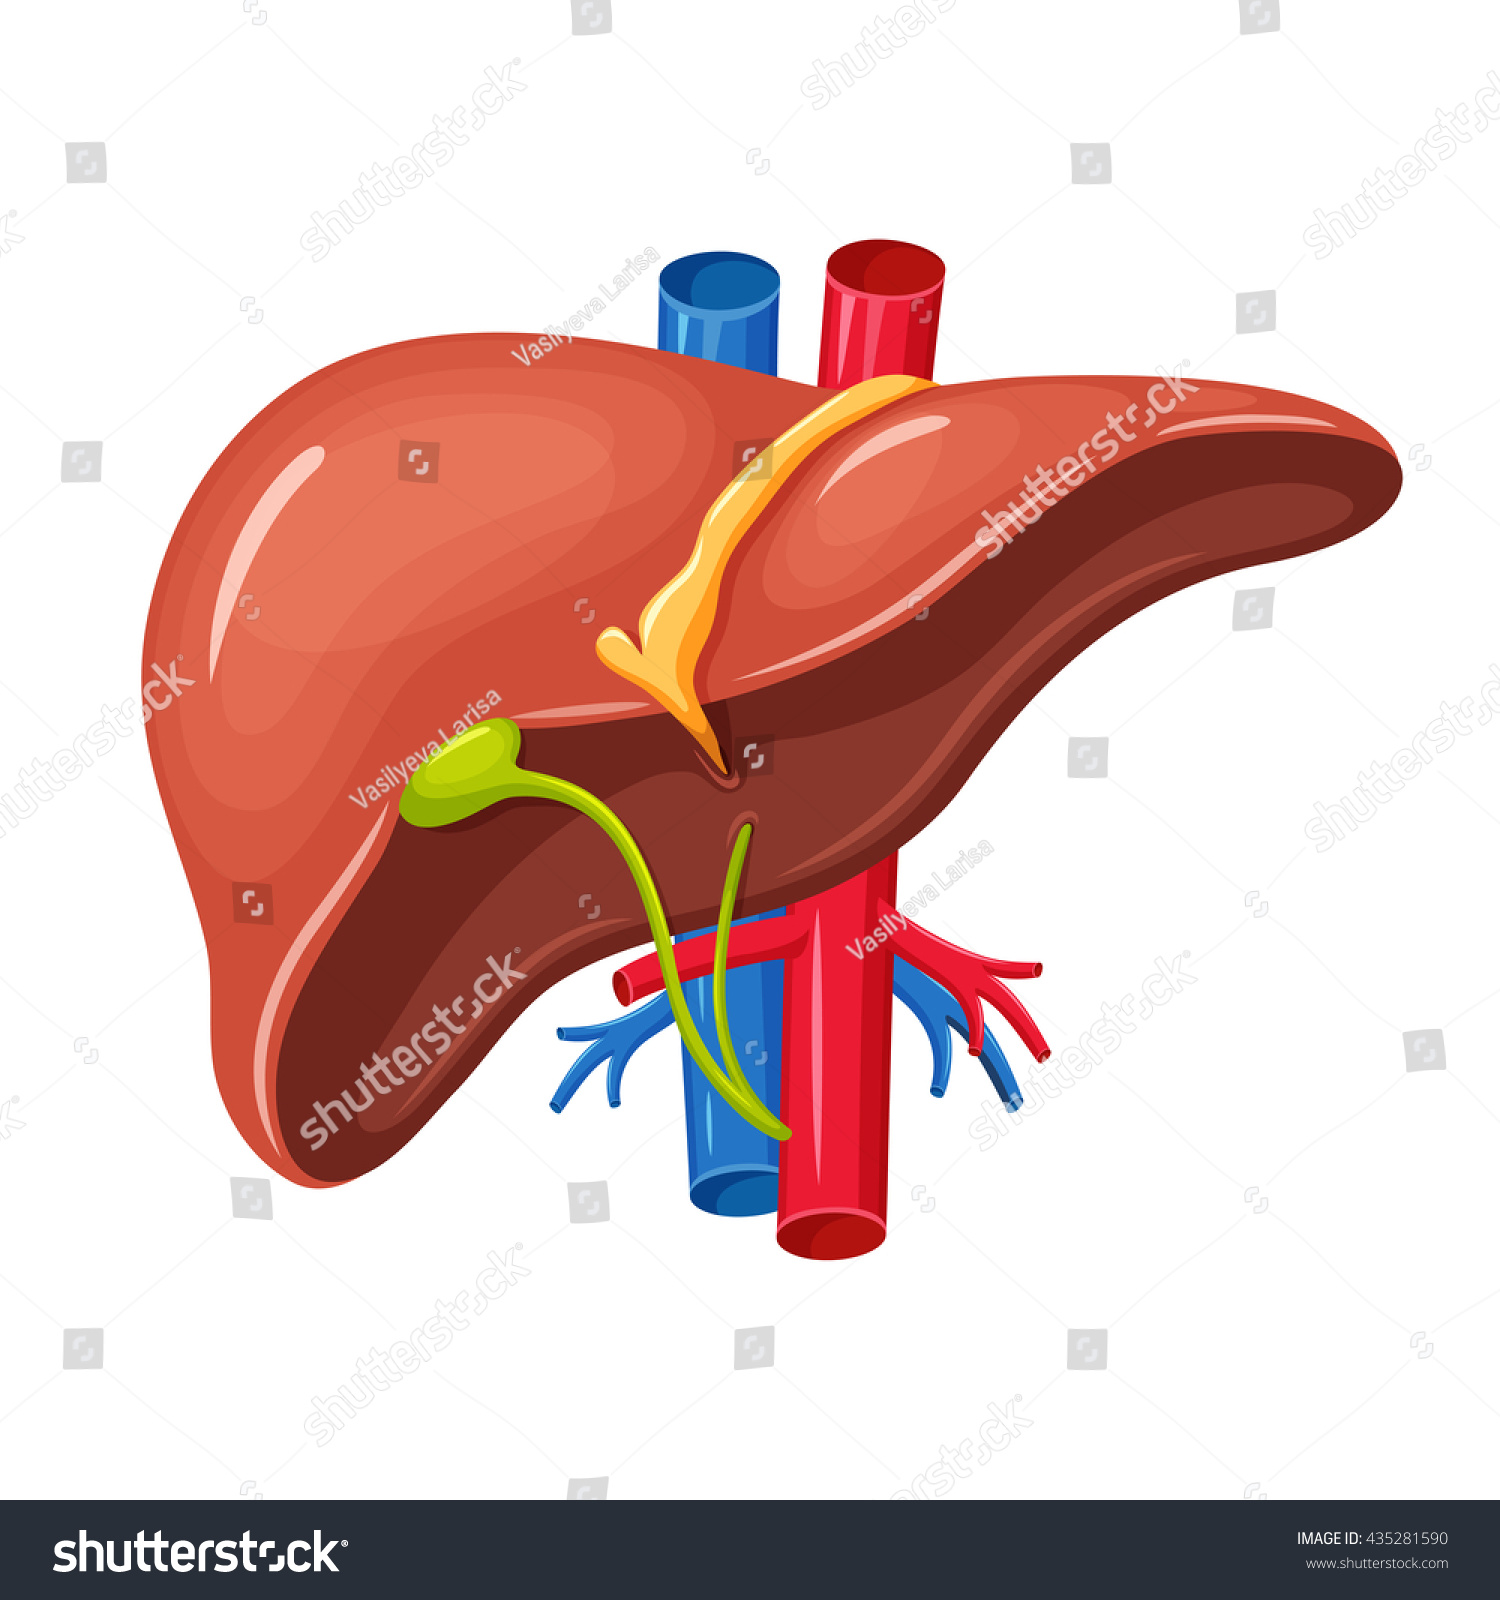 Human Liver Anatomy Medical Science Vector Stock Vector 435281590 ...